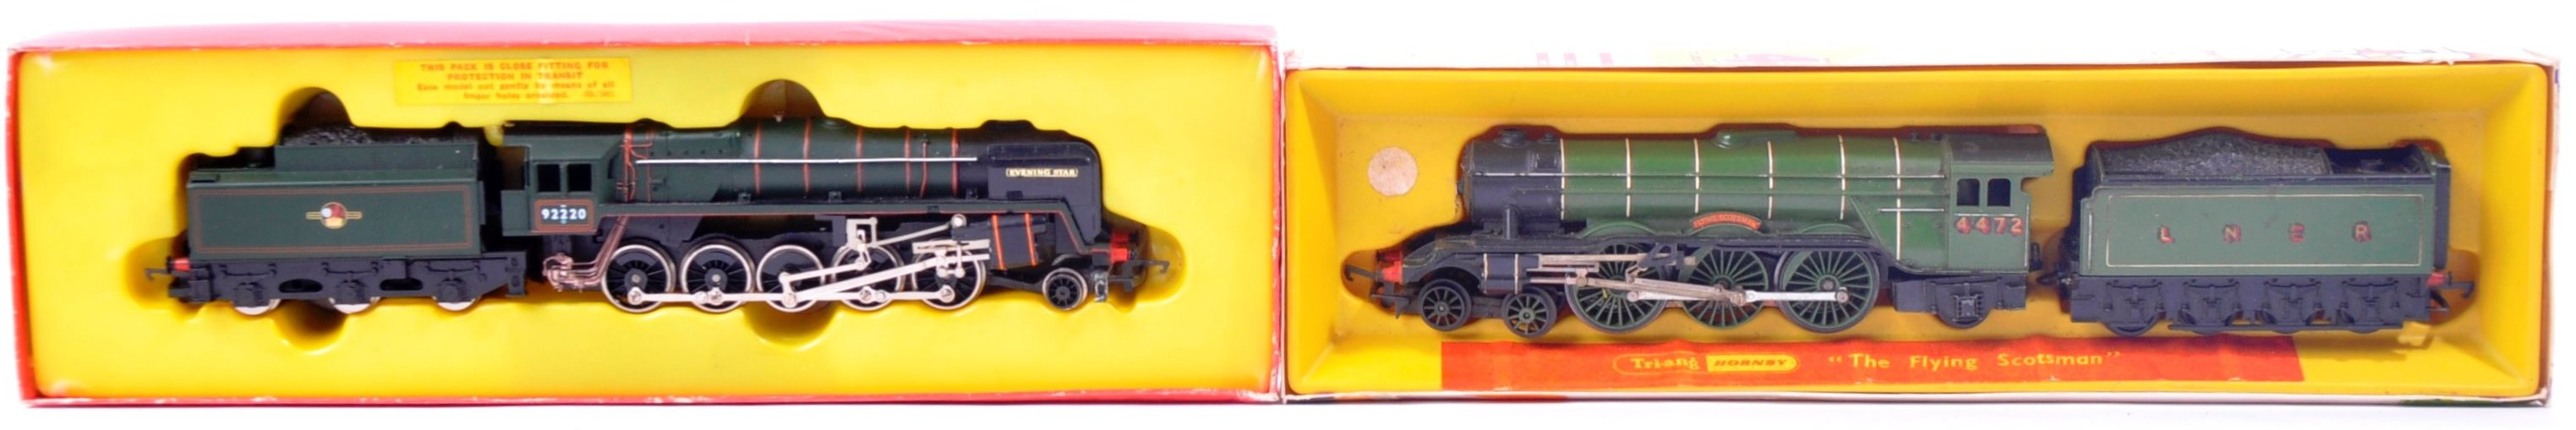 TWO VINTAGE HORNBY & TRIANG MODEL RAILWAY TRAINSET LOCOMOTIVES